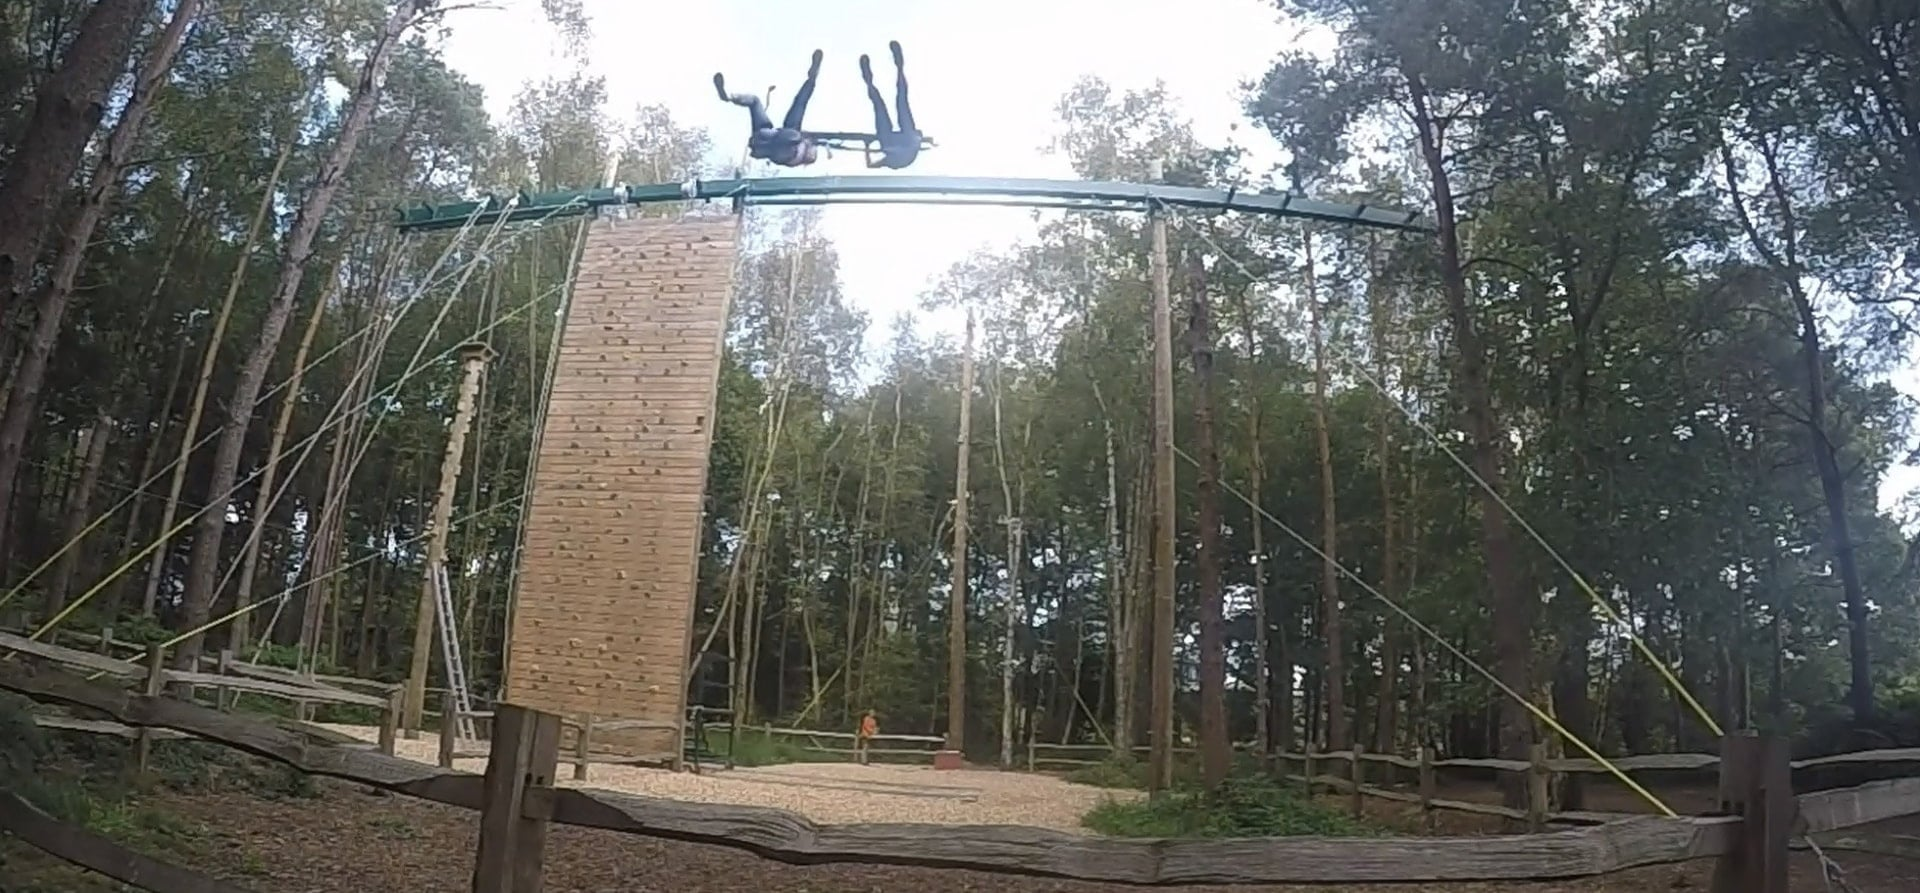 Giant Swing Experience - East Sussex-5